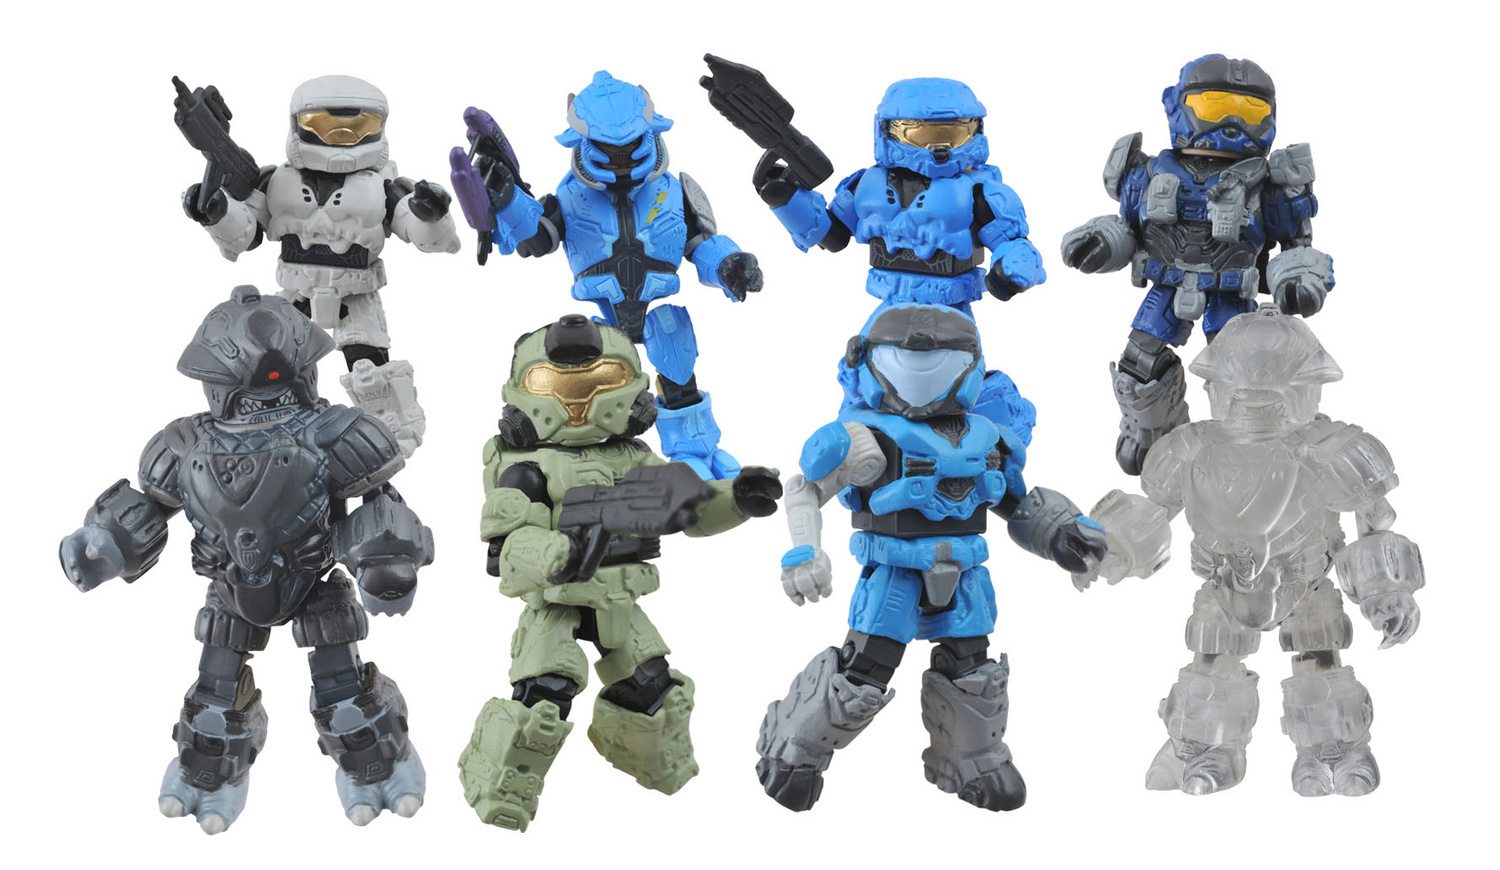 Halo Minimates Series 3 Halo Minimates Series 3